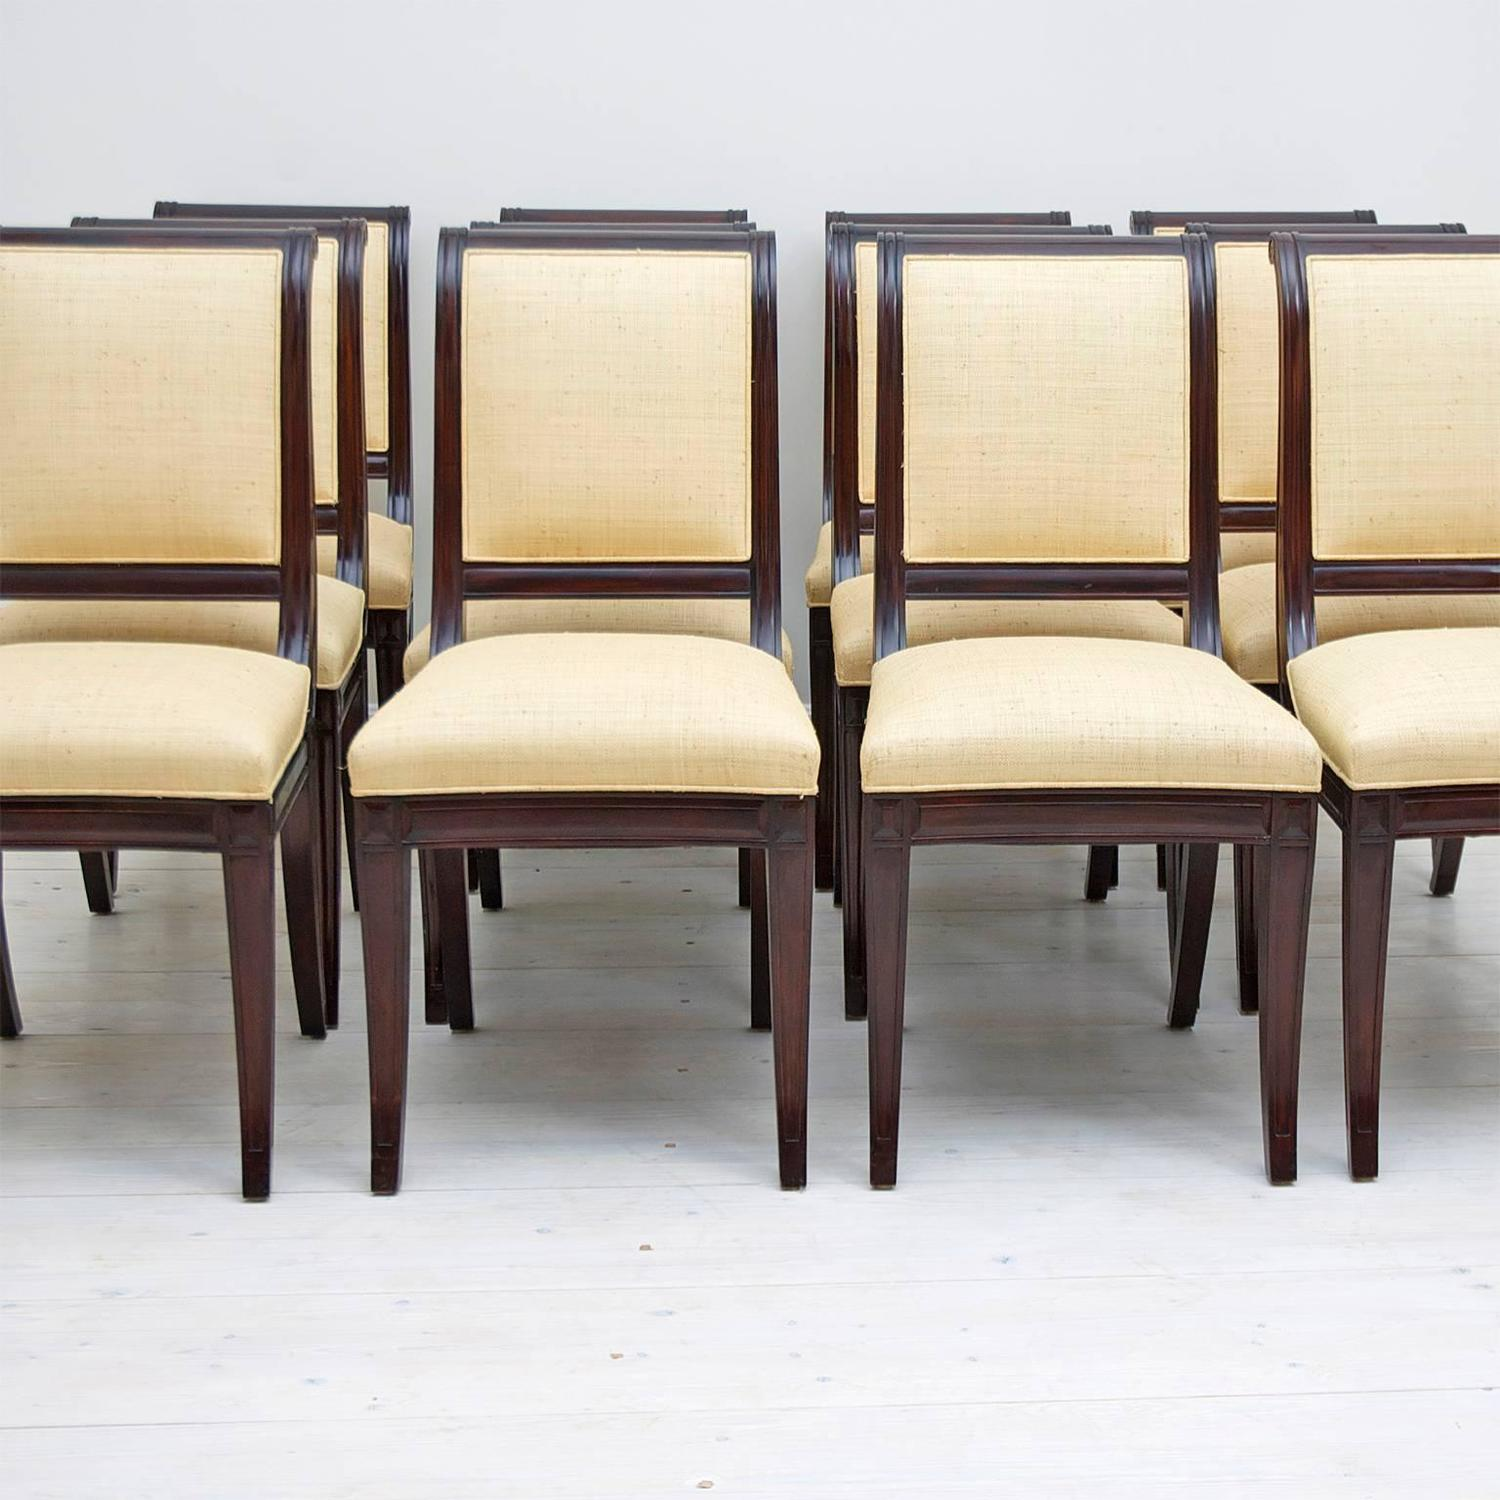 british colonial chair disposable plastic covers for parties set of 12 style dining chairs upholstered in madagascar